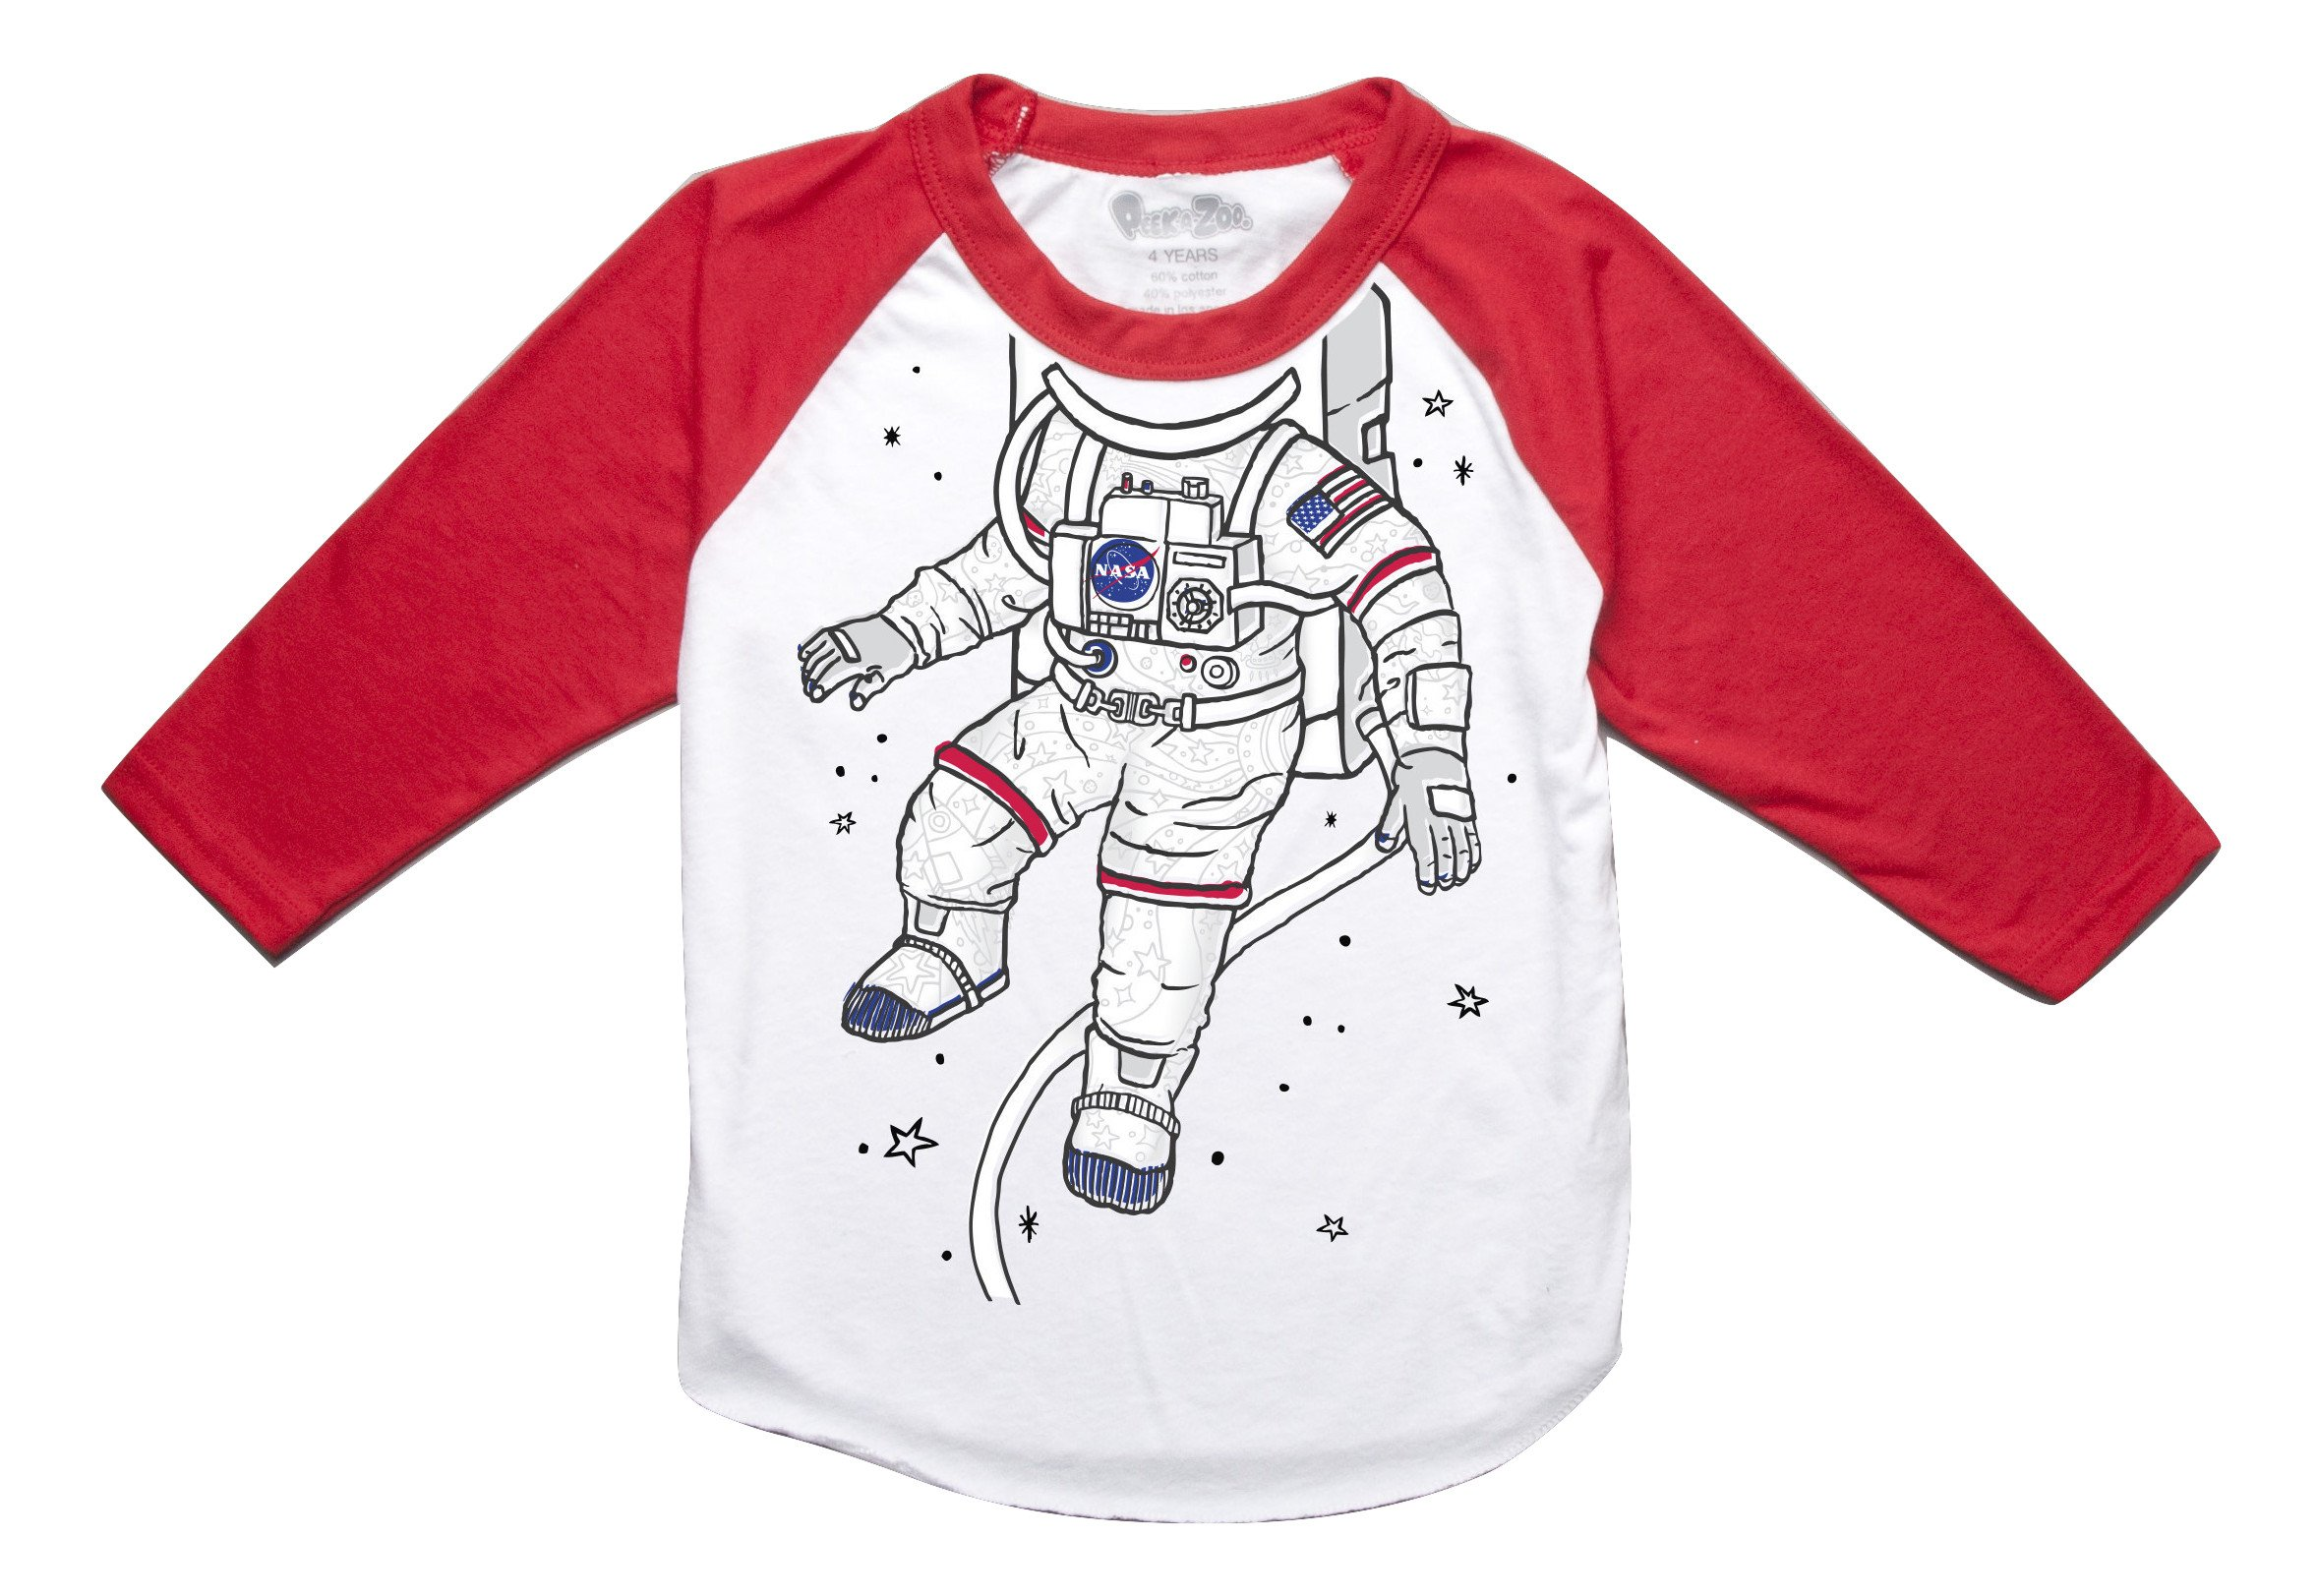 Peek-A-Zoo Toddler Become an Animal 3/4 Sleeve Raglan - Astronaut Red - 2T